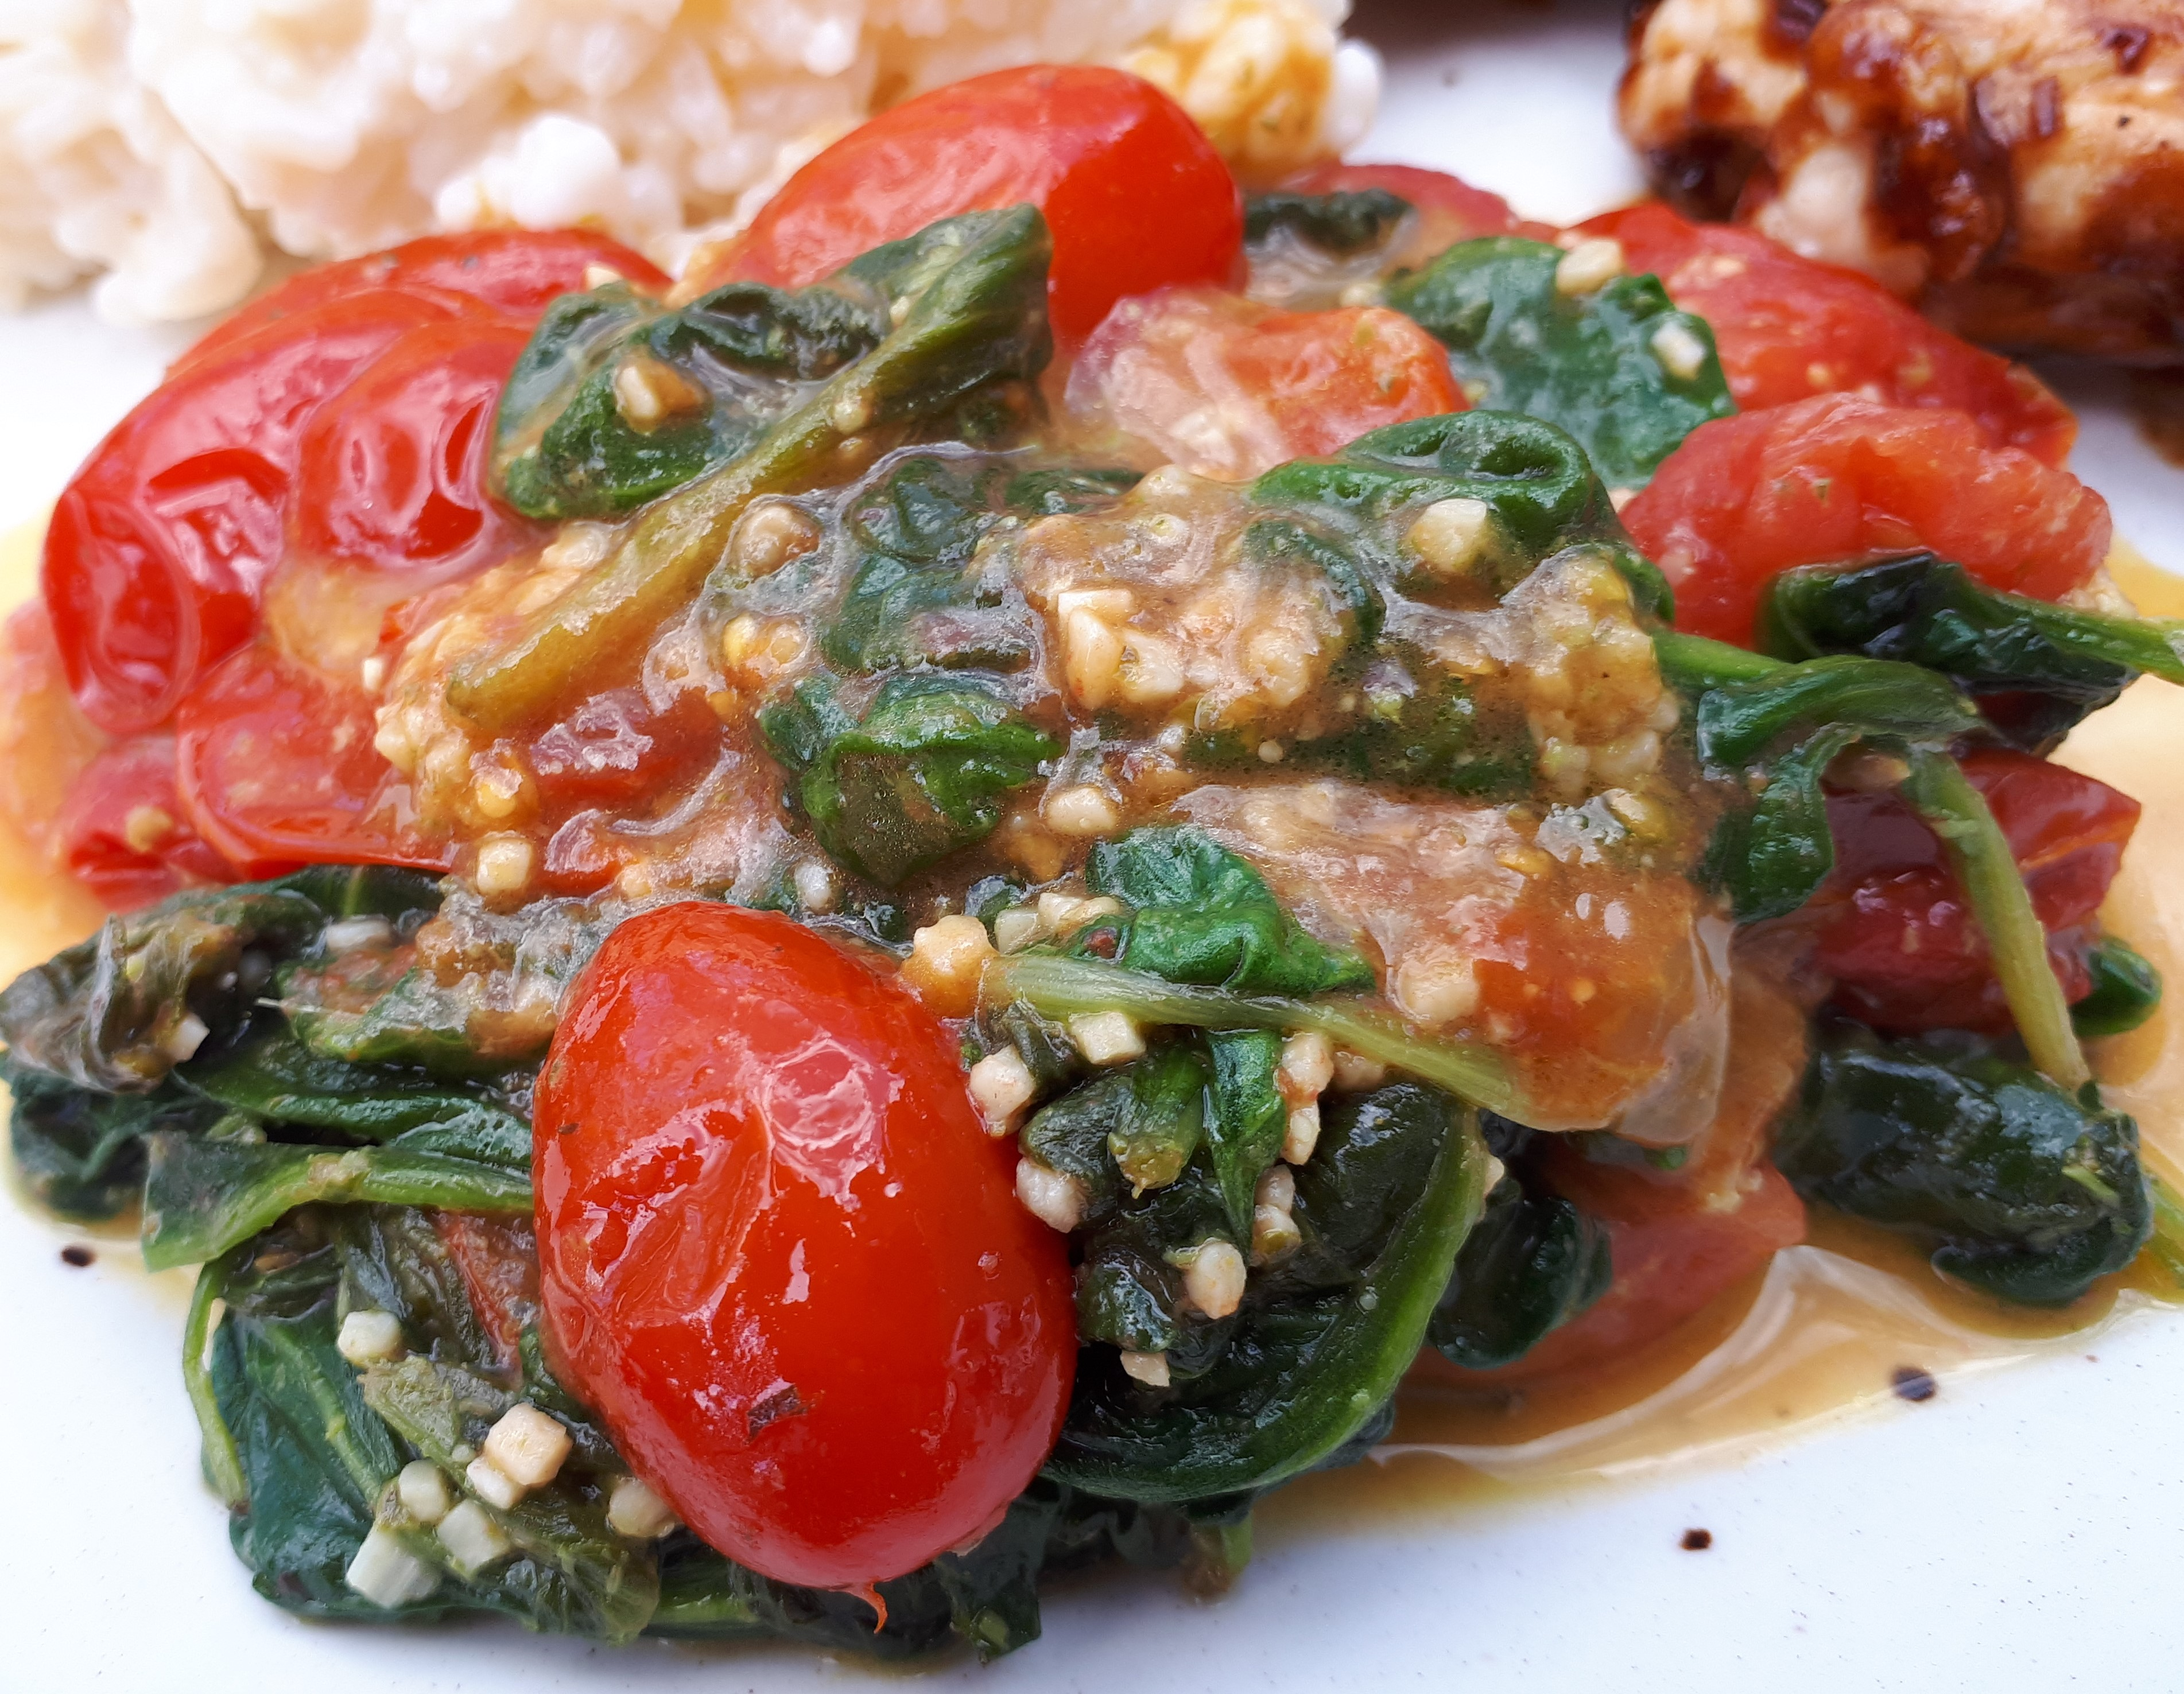 Pesto Spinach and Tomatoes tonia.st